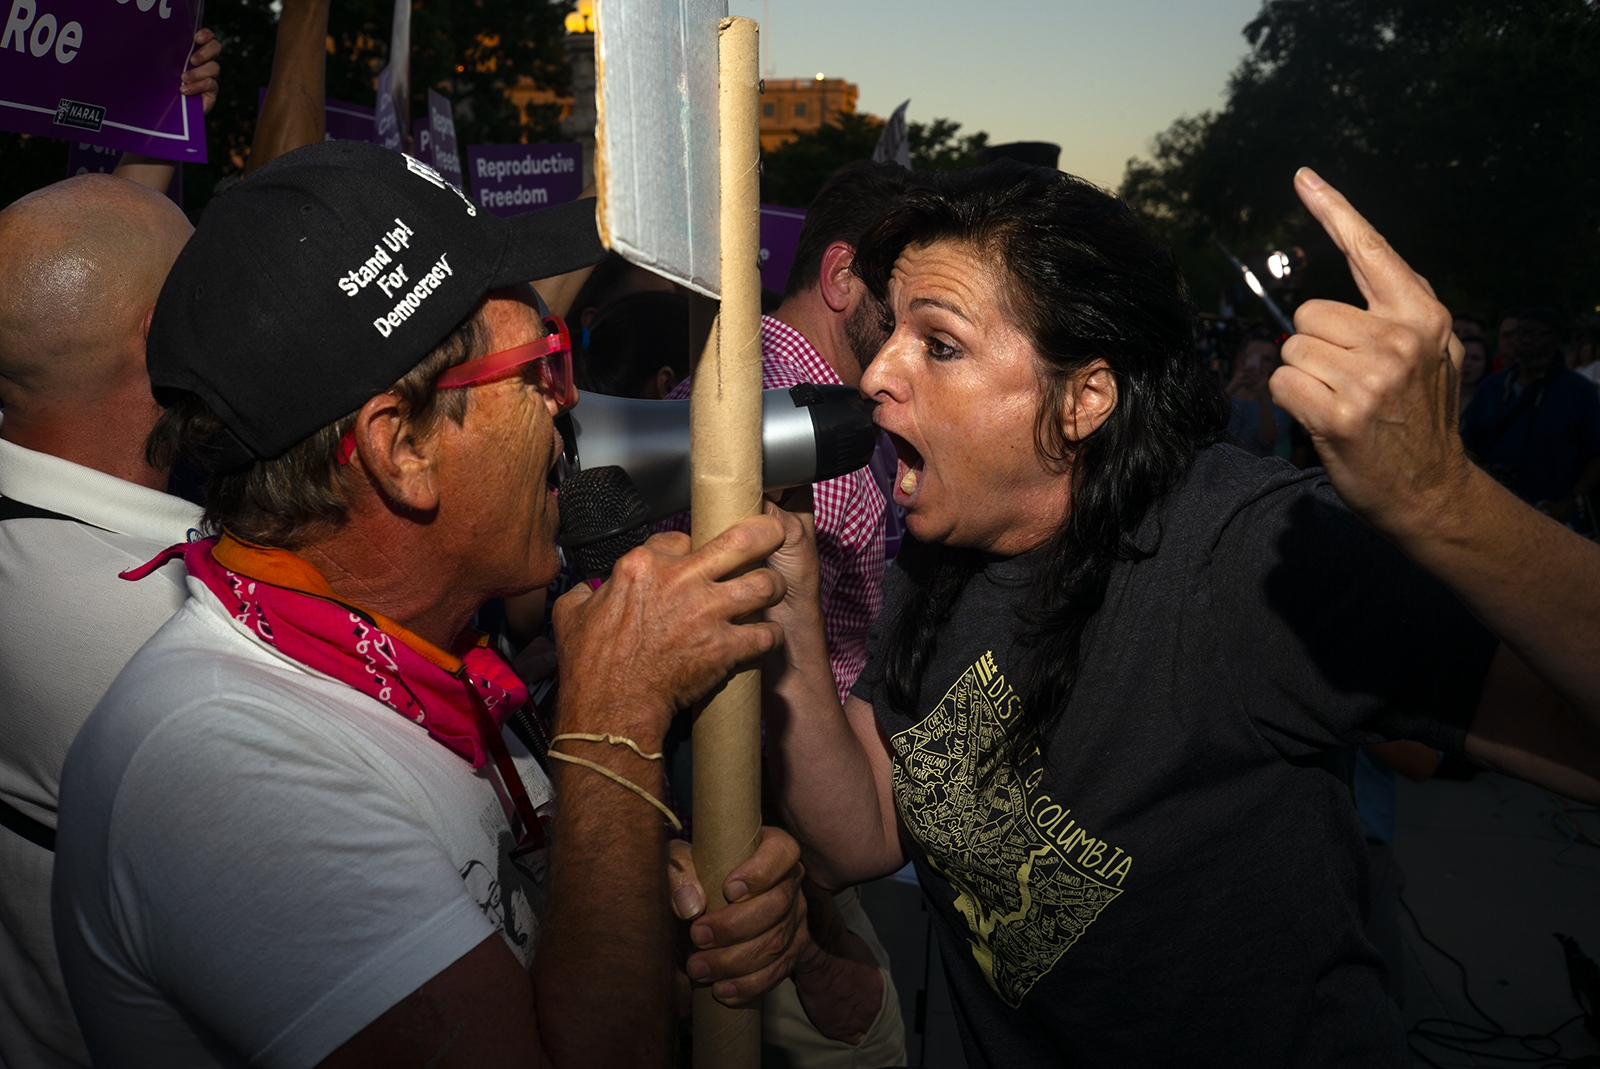 Pro-life and a anti-abortion protesters get in each others faces during a rally at the U.S. Supreme Court building.